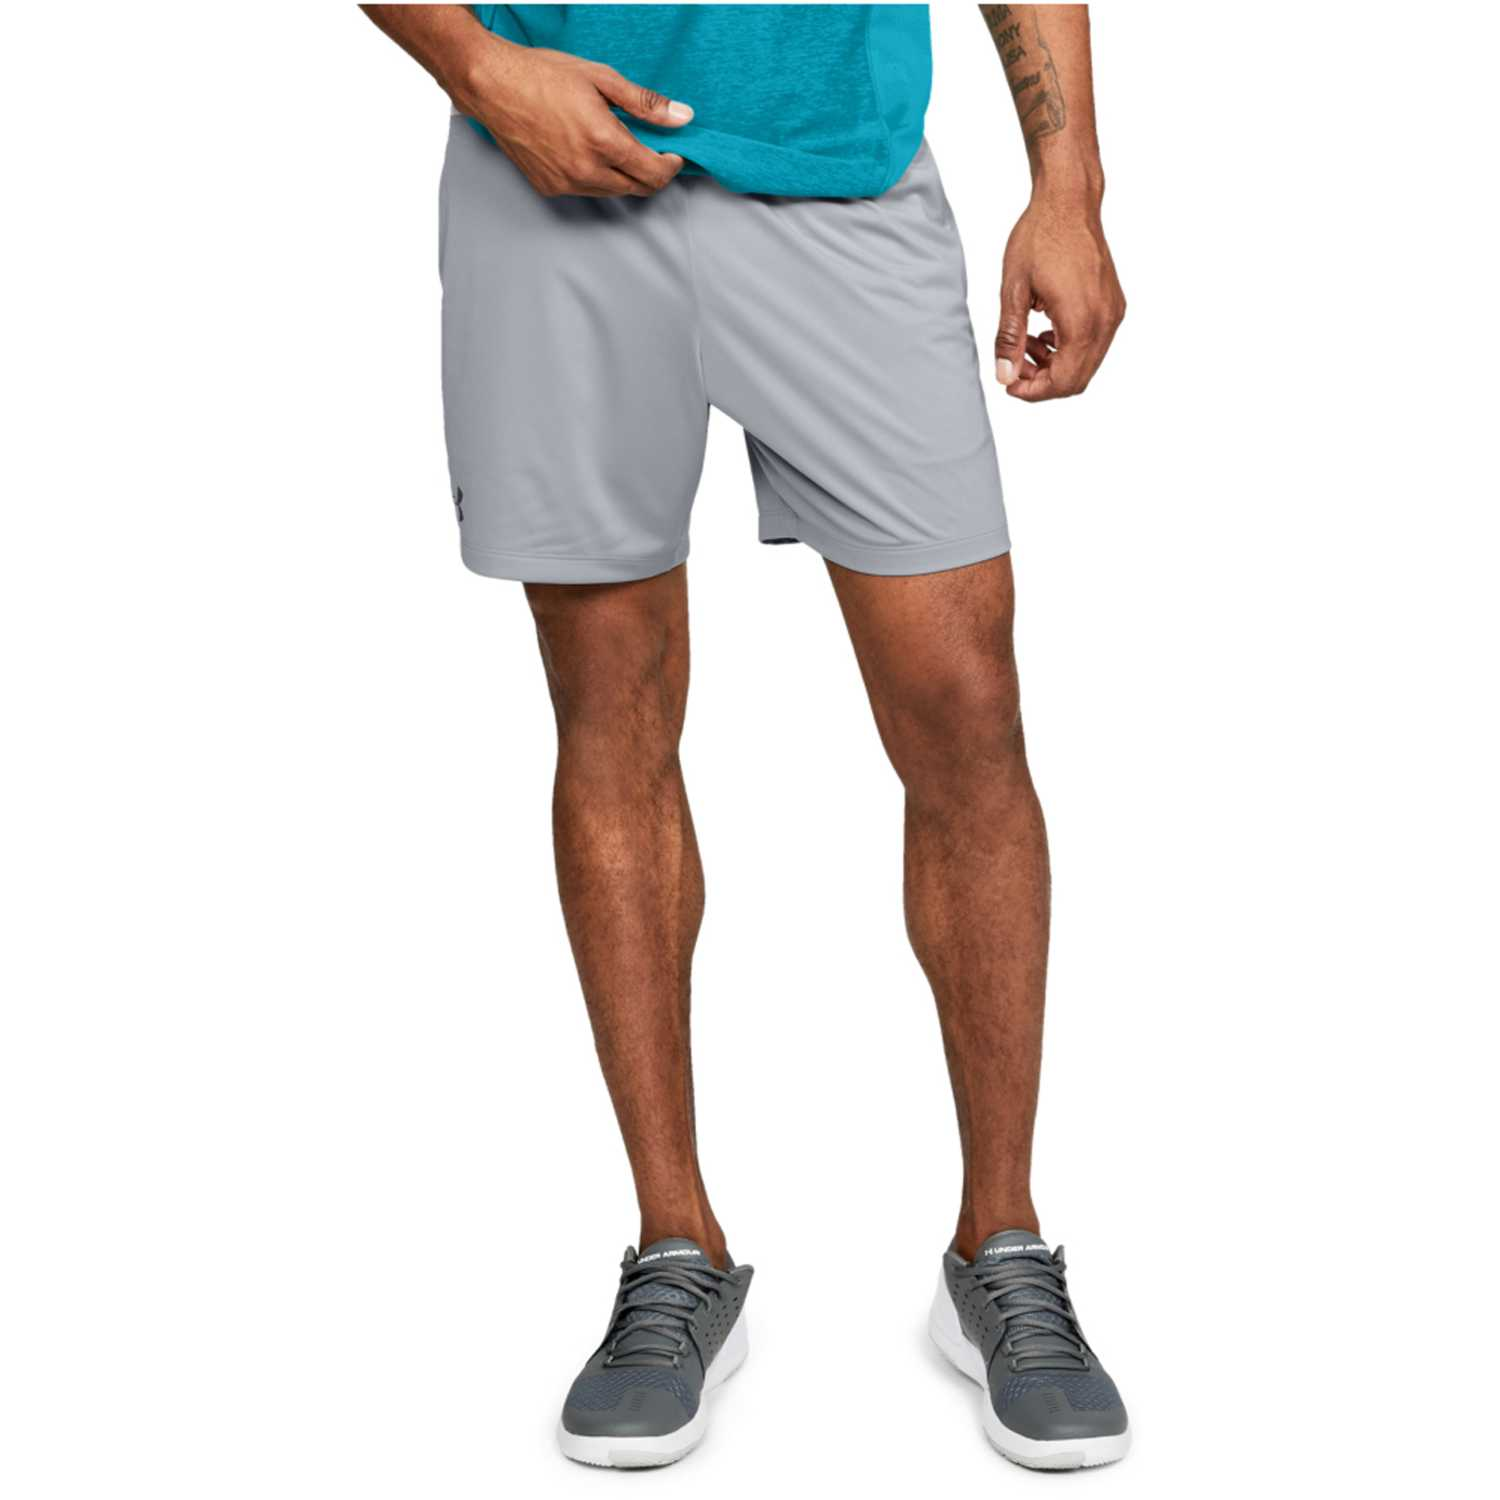 Under Armour mk1 short 7in.-gry Gris Shorts Deportivos